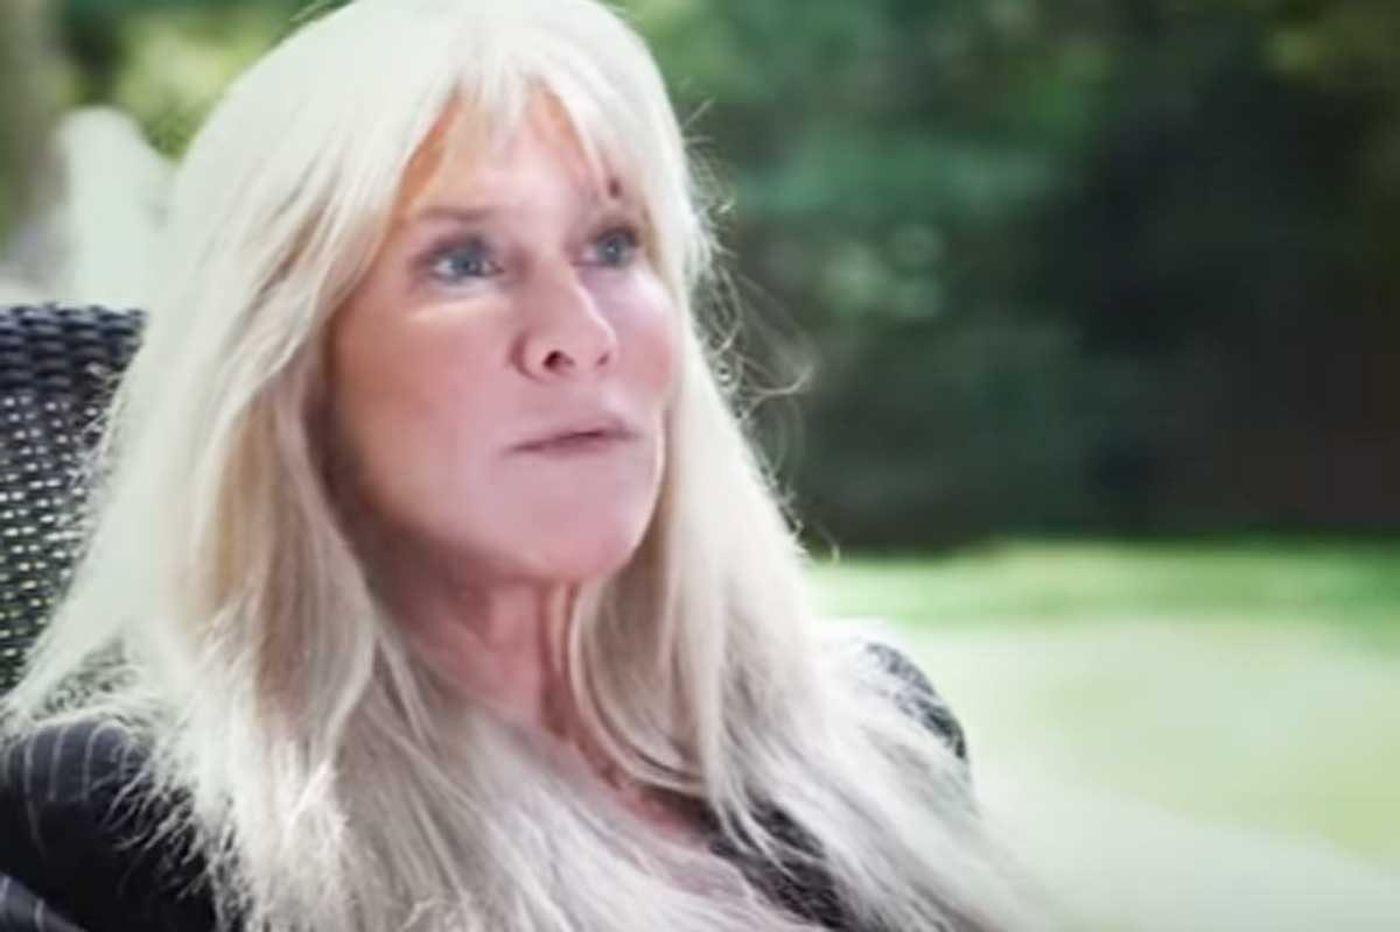 Lindy Snider: Working to dispel the fear of marijuana